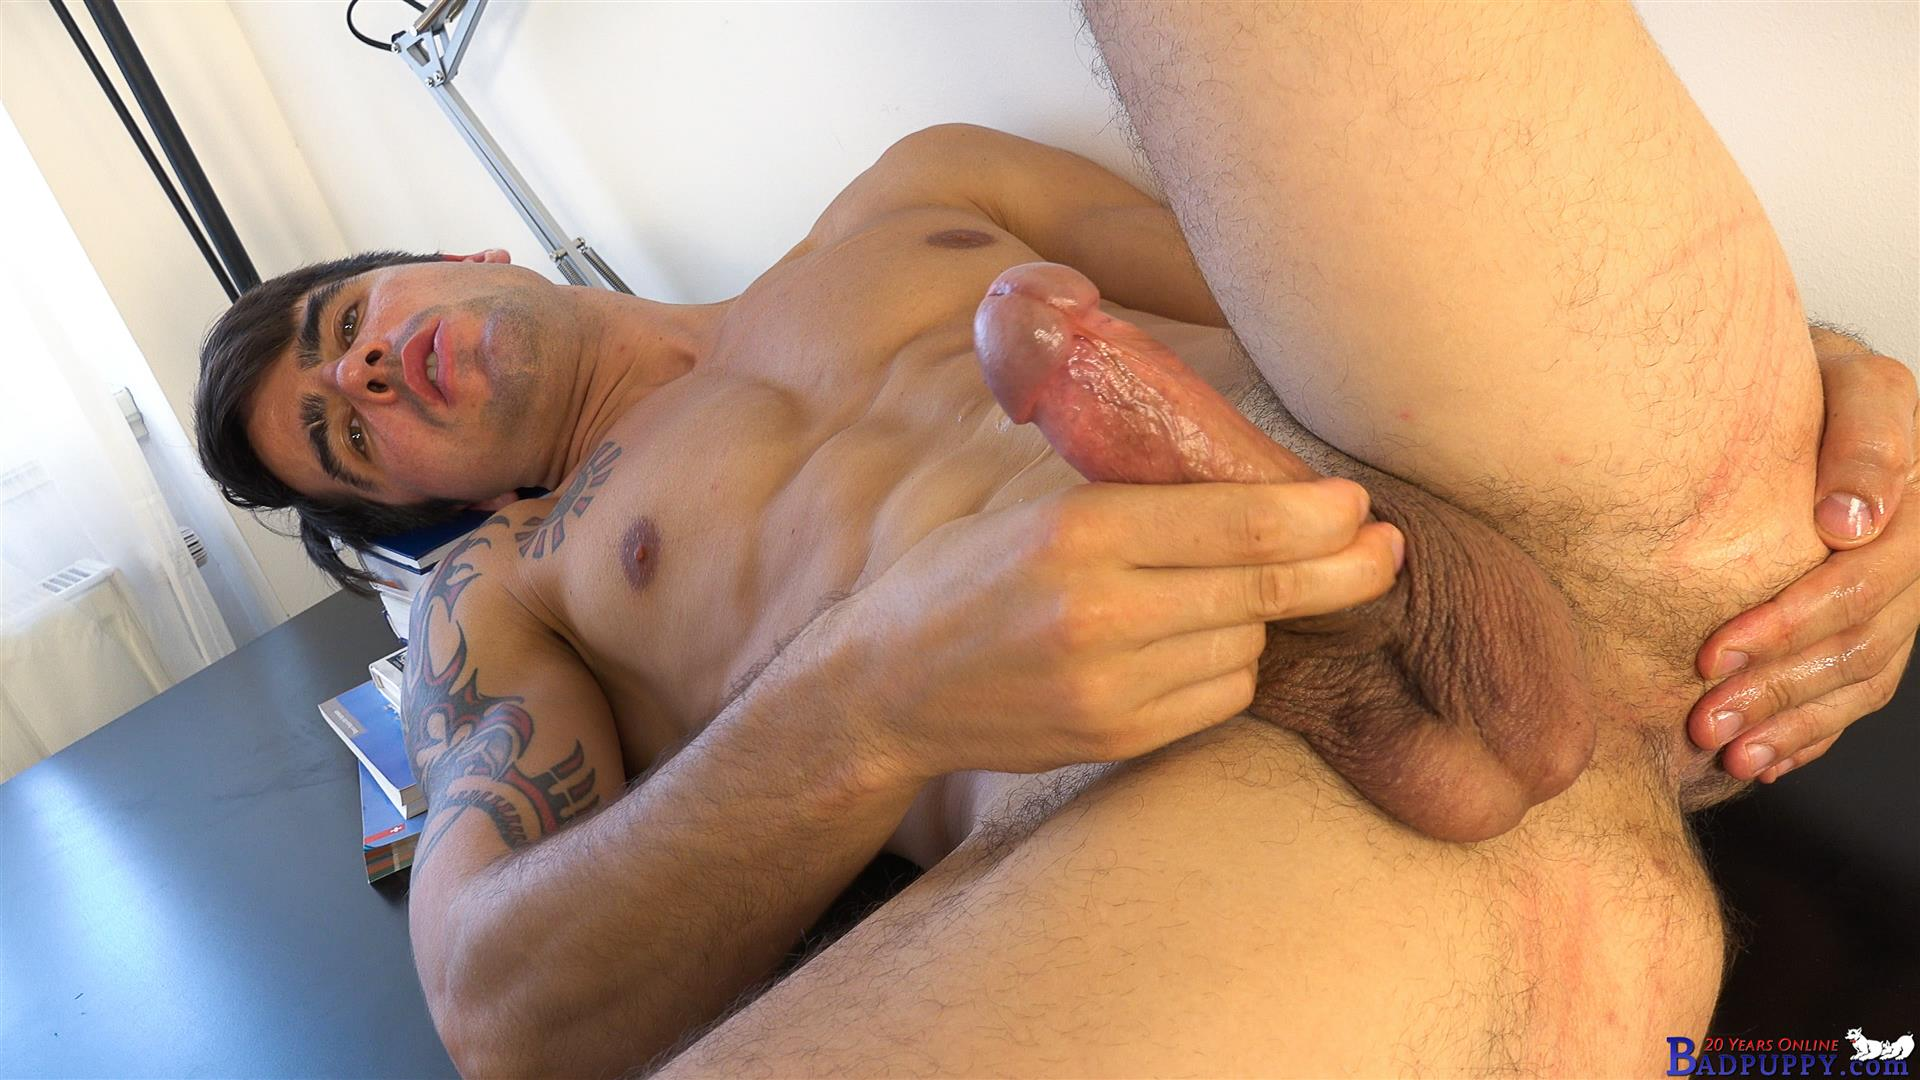 Badpuppy Milan Pis Straight Guy With Big Uncut Cock Masturbating Amateur Gay Porn 14 Straight Italian Banker Masturbating His Big Uncut Cock